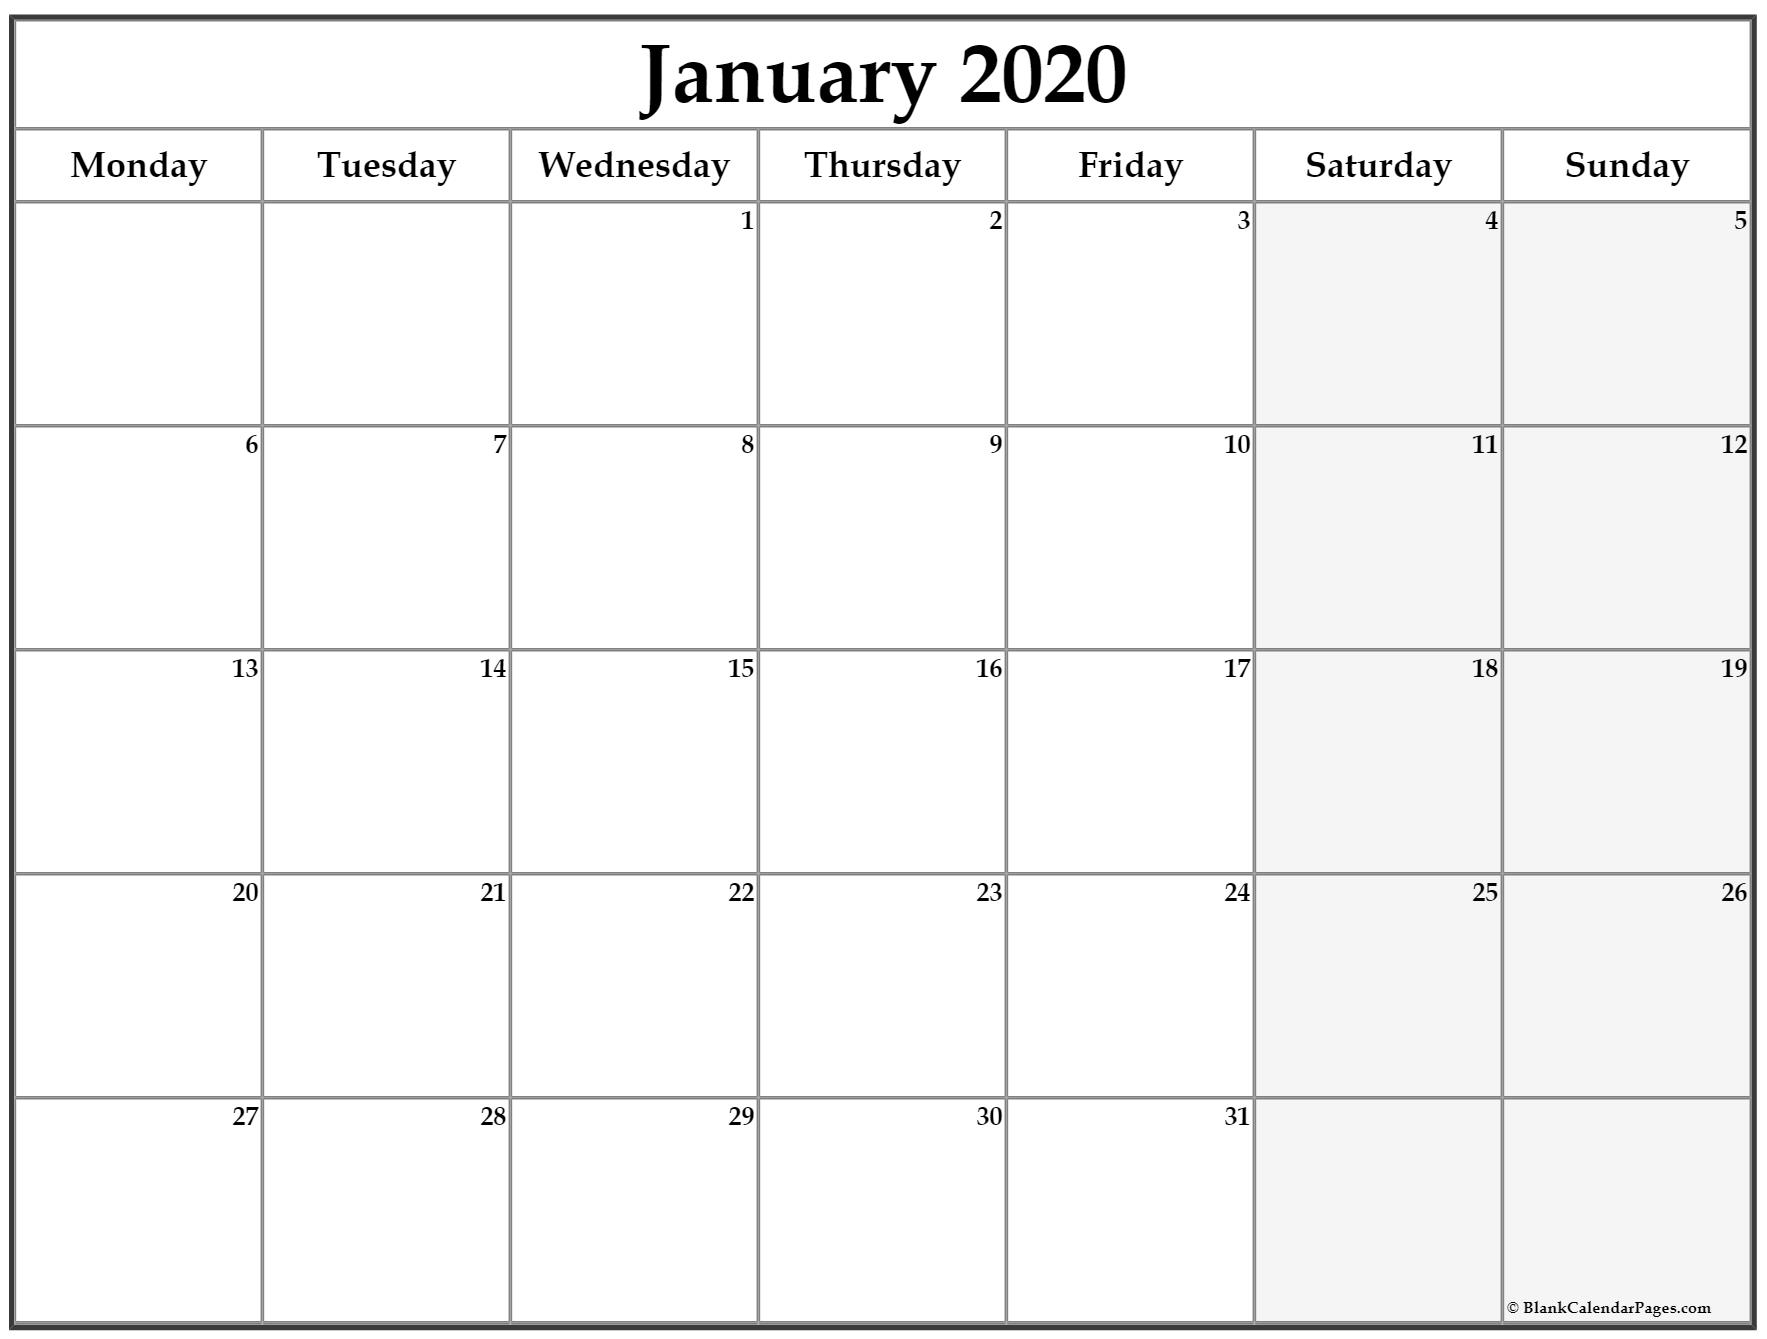 January 2020 Monday Calendar | Monday To Sunday in Monday To Sunday Calendar Template